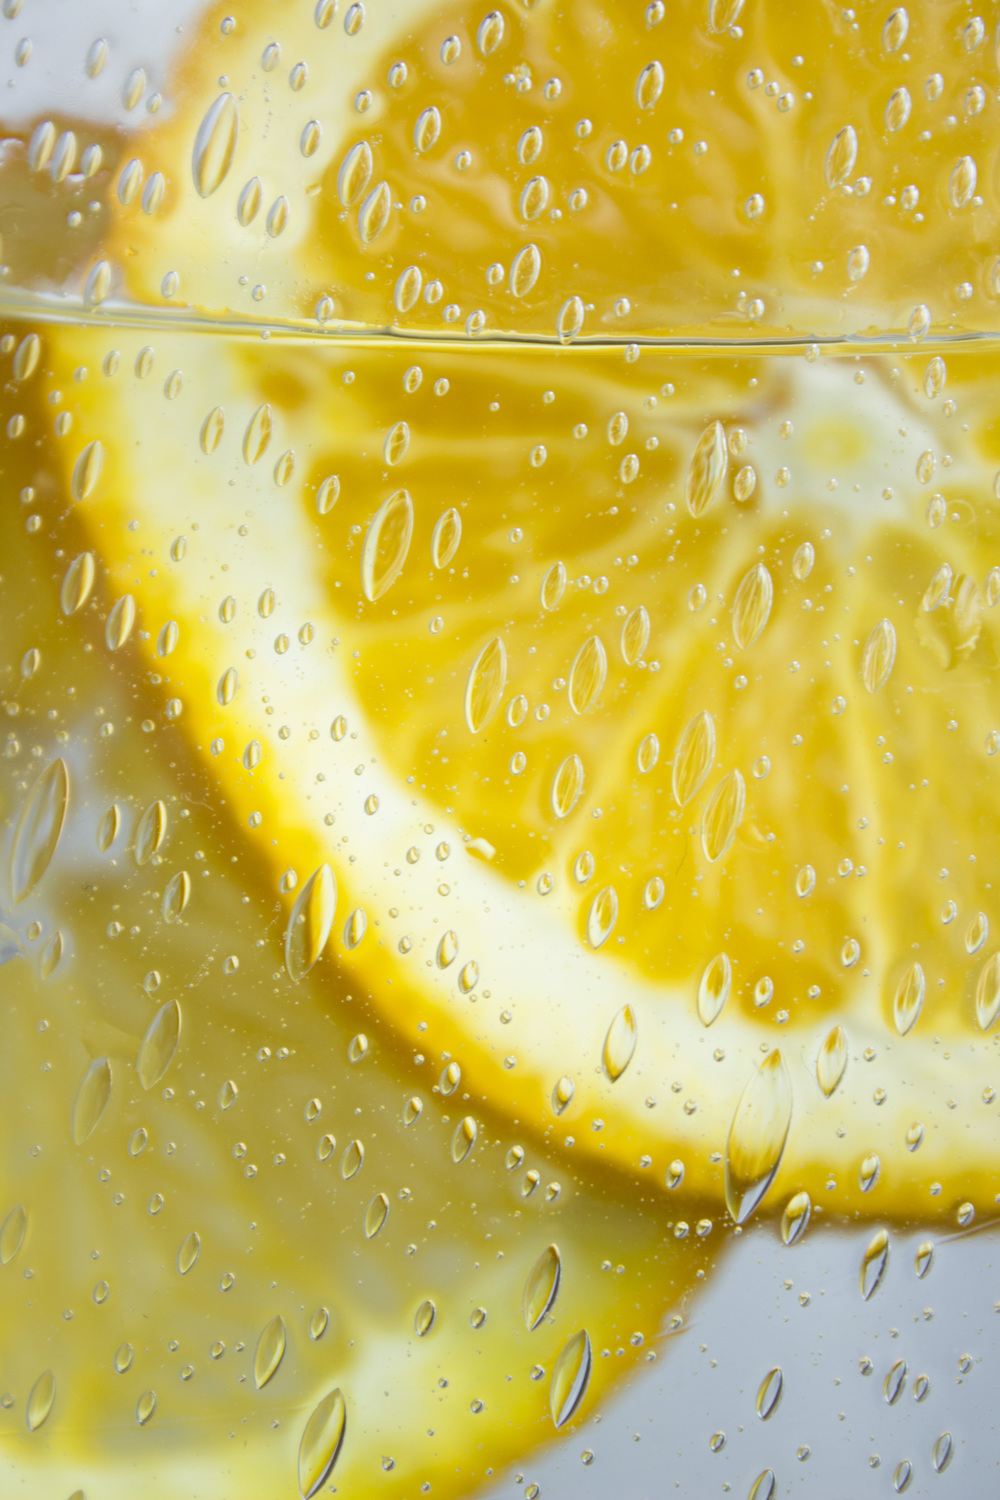 lemon_water_frosted.jpg